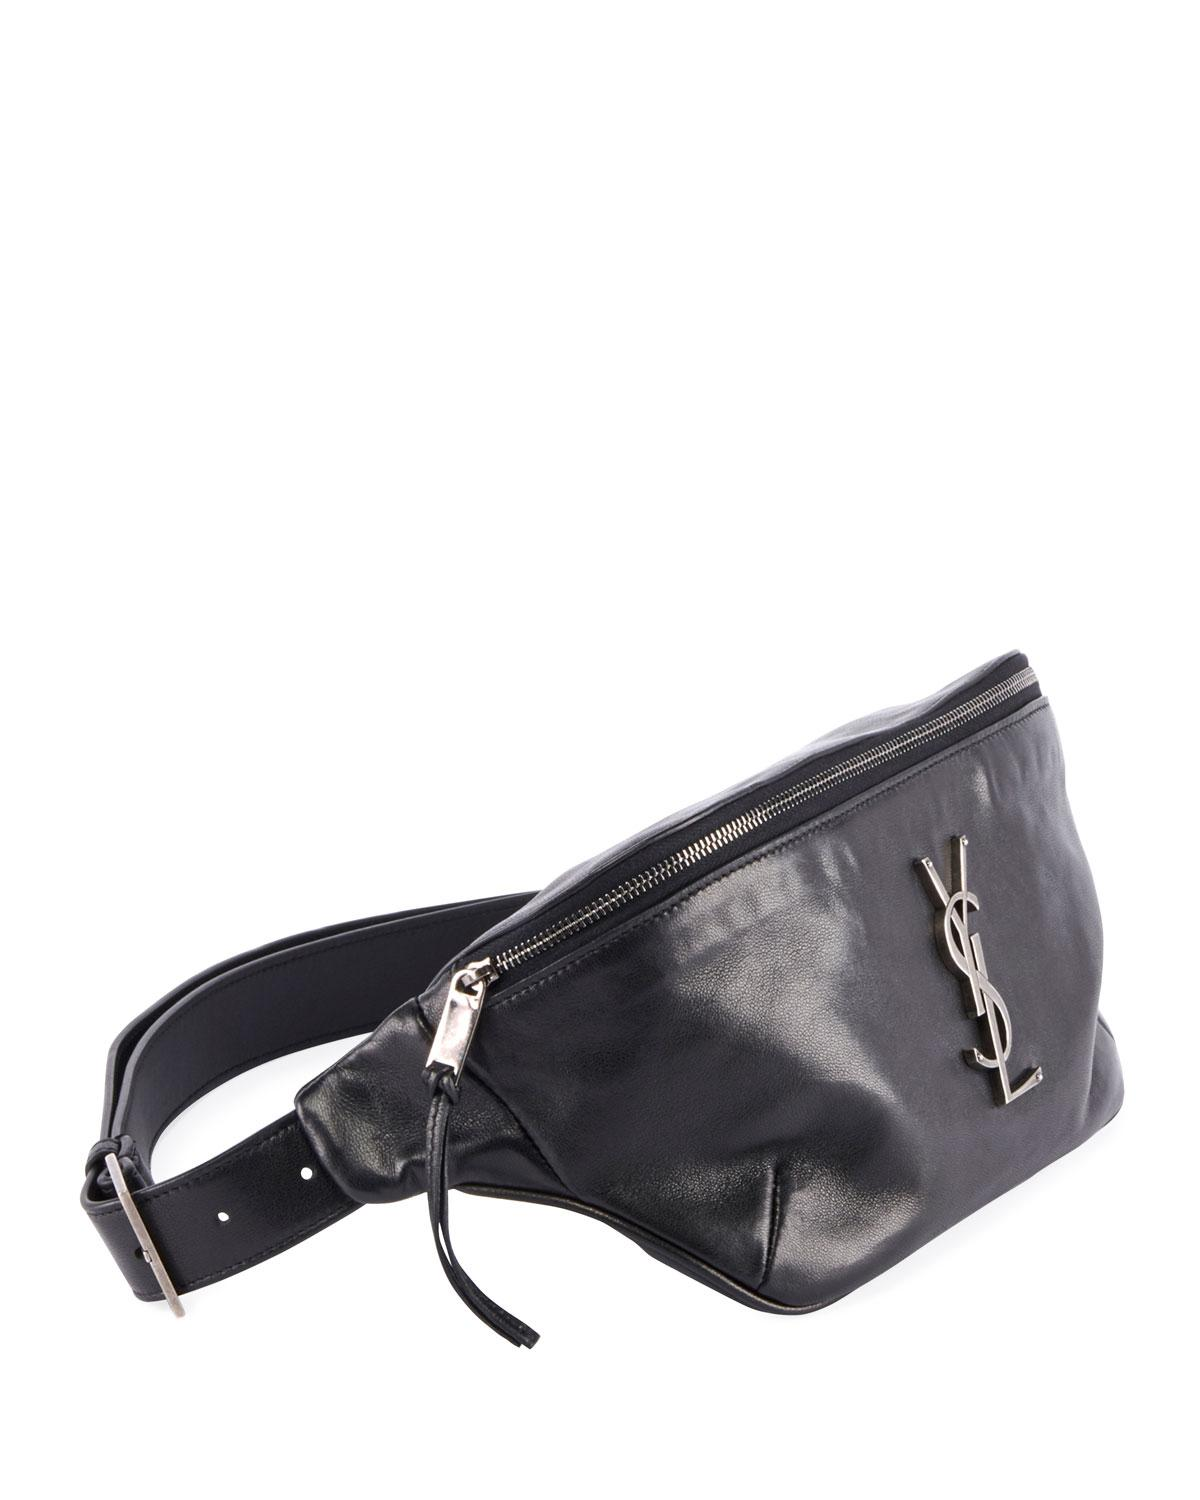 c6921243e Saint Laurent Ysl Monogram Curved Zip-top Belt Bag in Black - Lyst